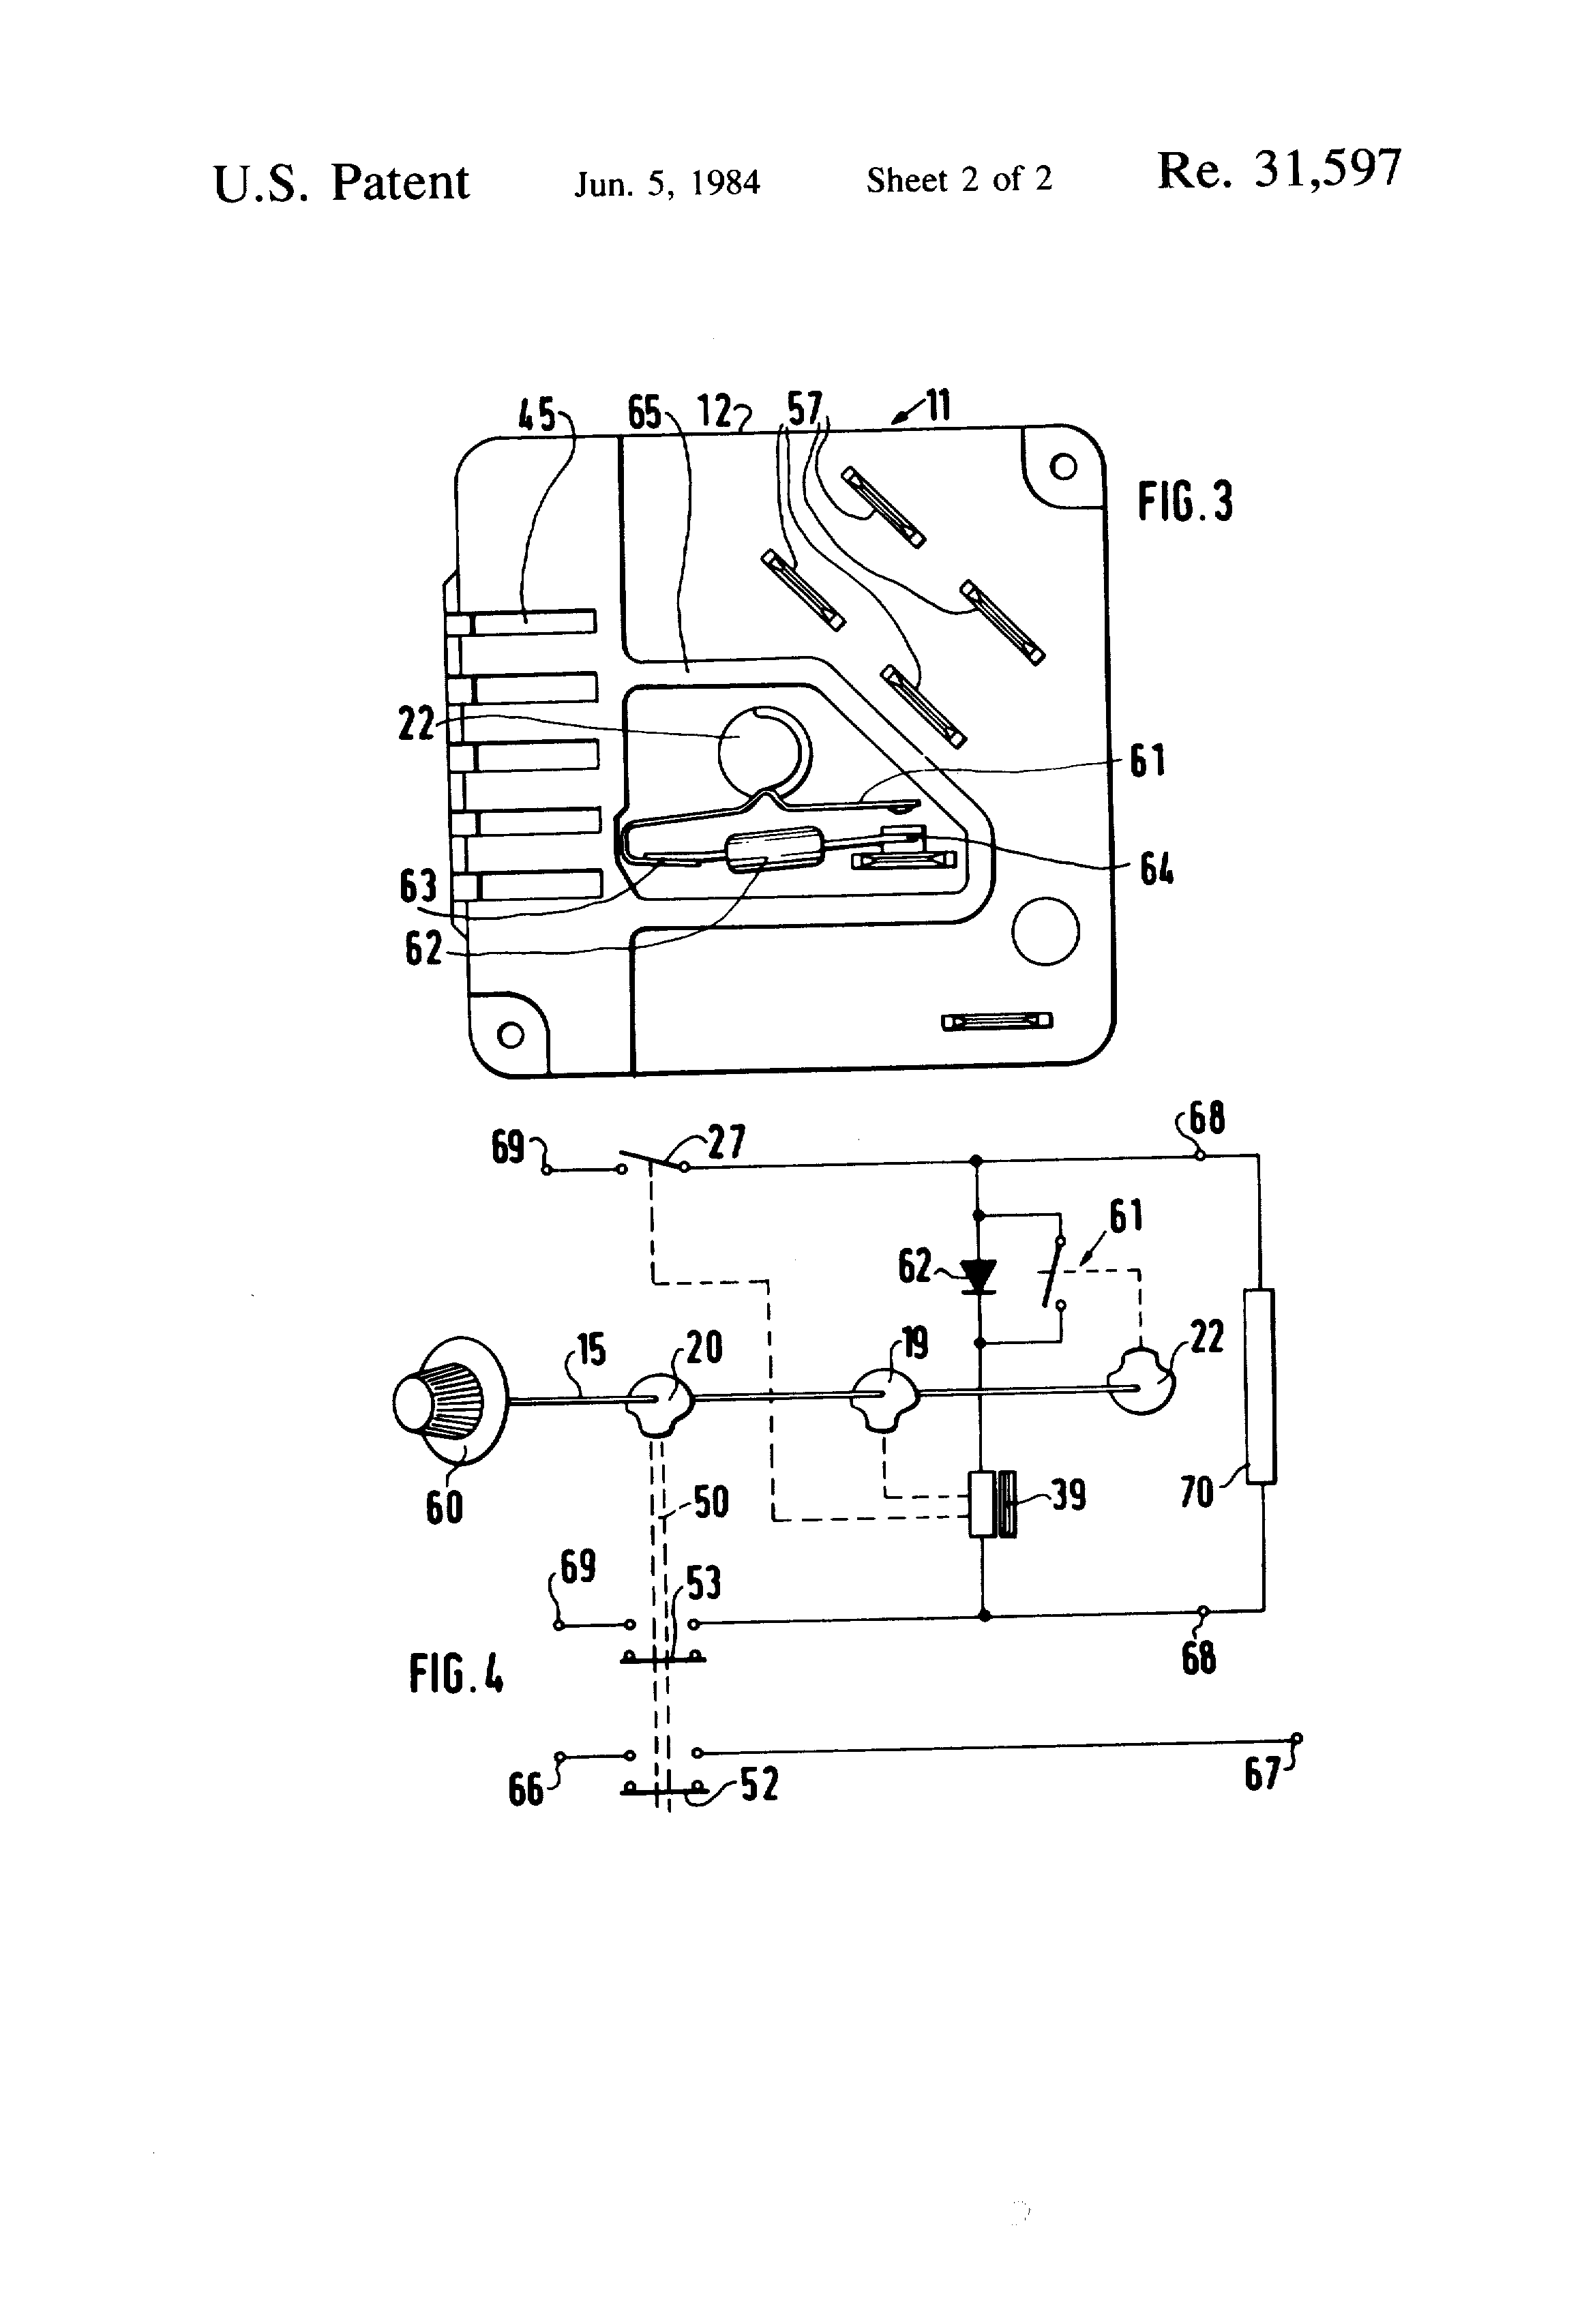 Hot Rod Wiring Diagram Online Trusted Diagrams For Street Ego Plate Light Switch U2022 Basic Turn Signal